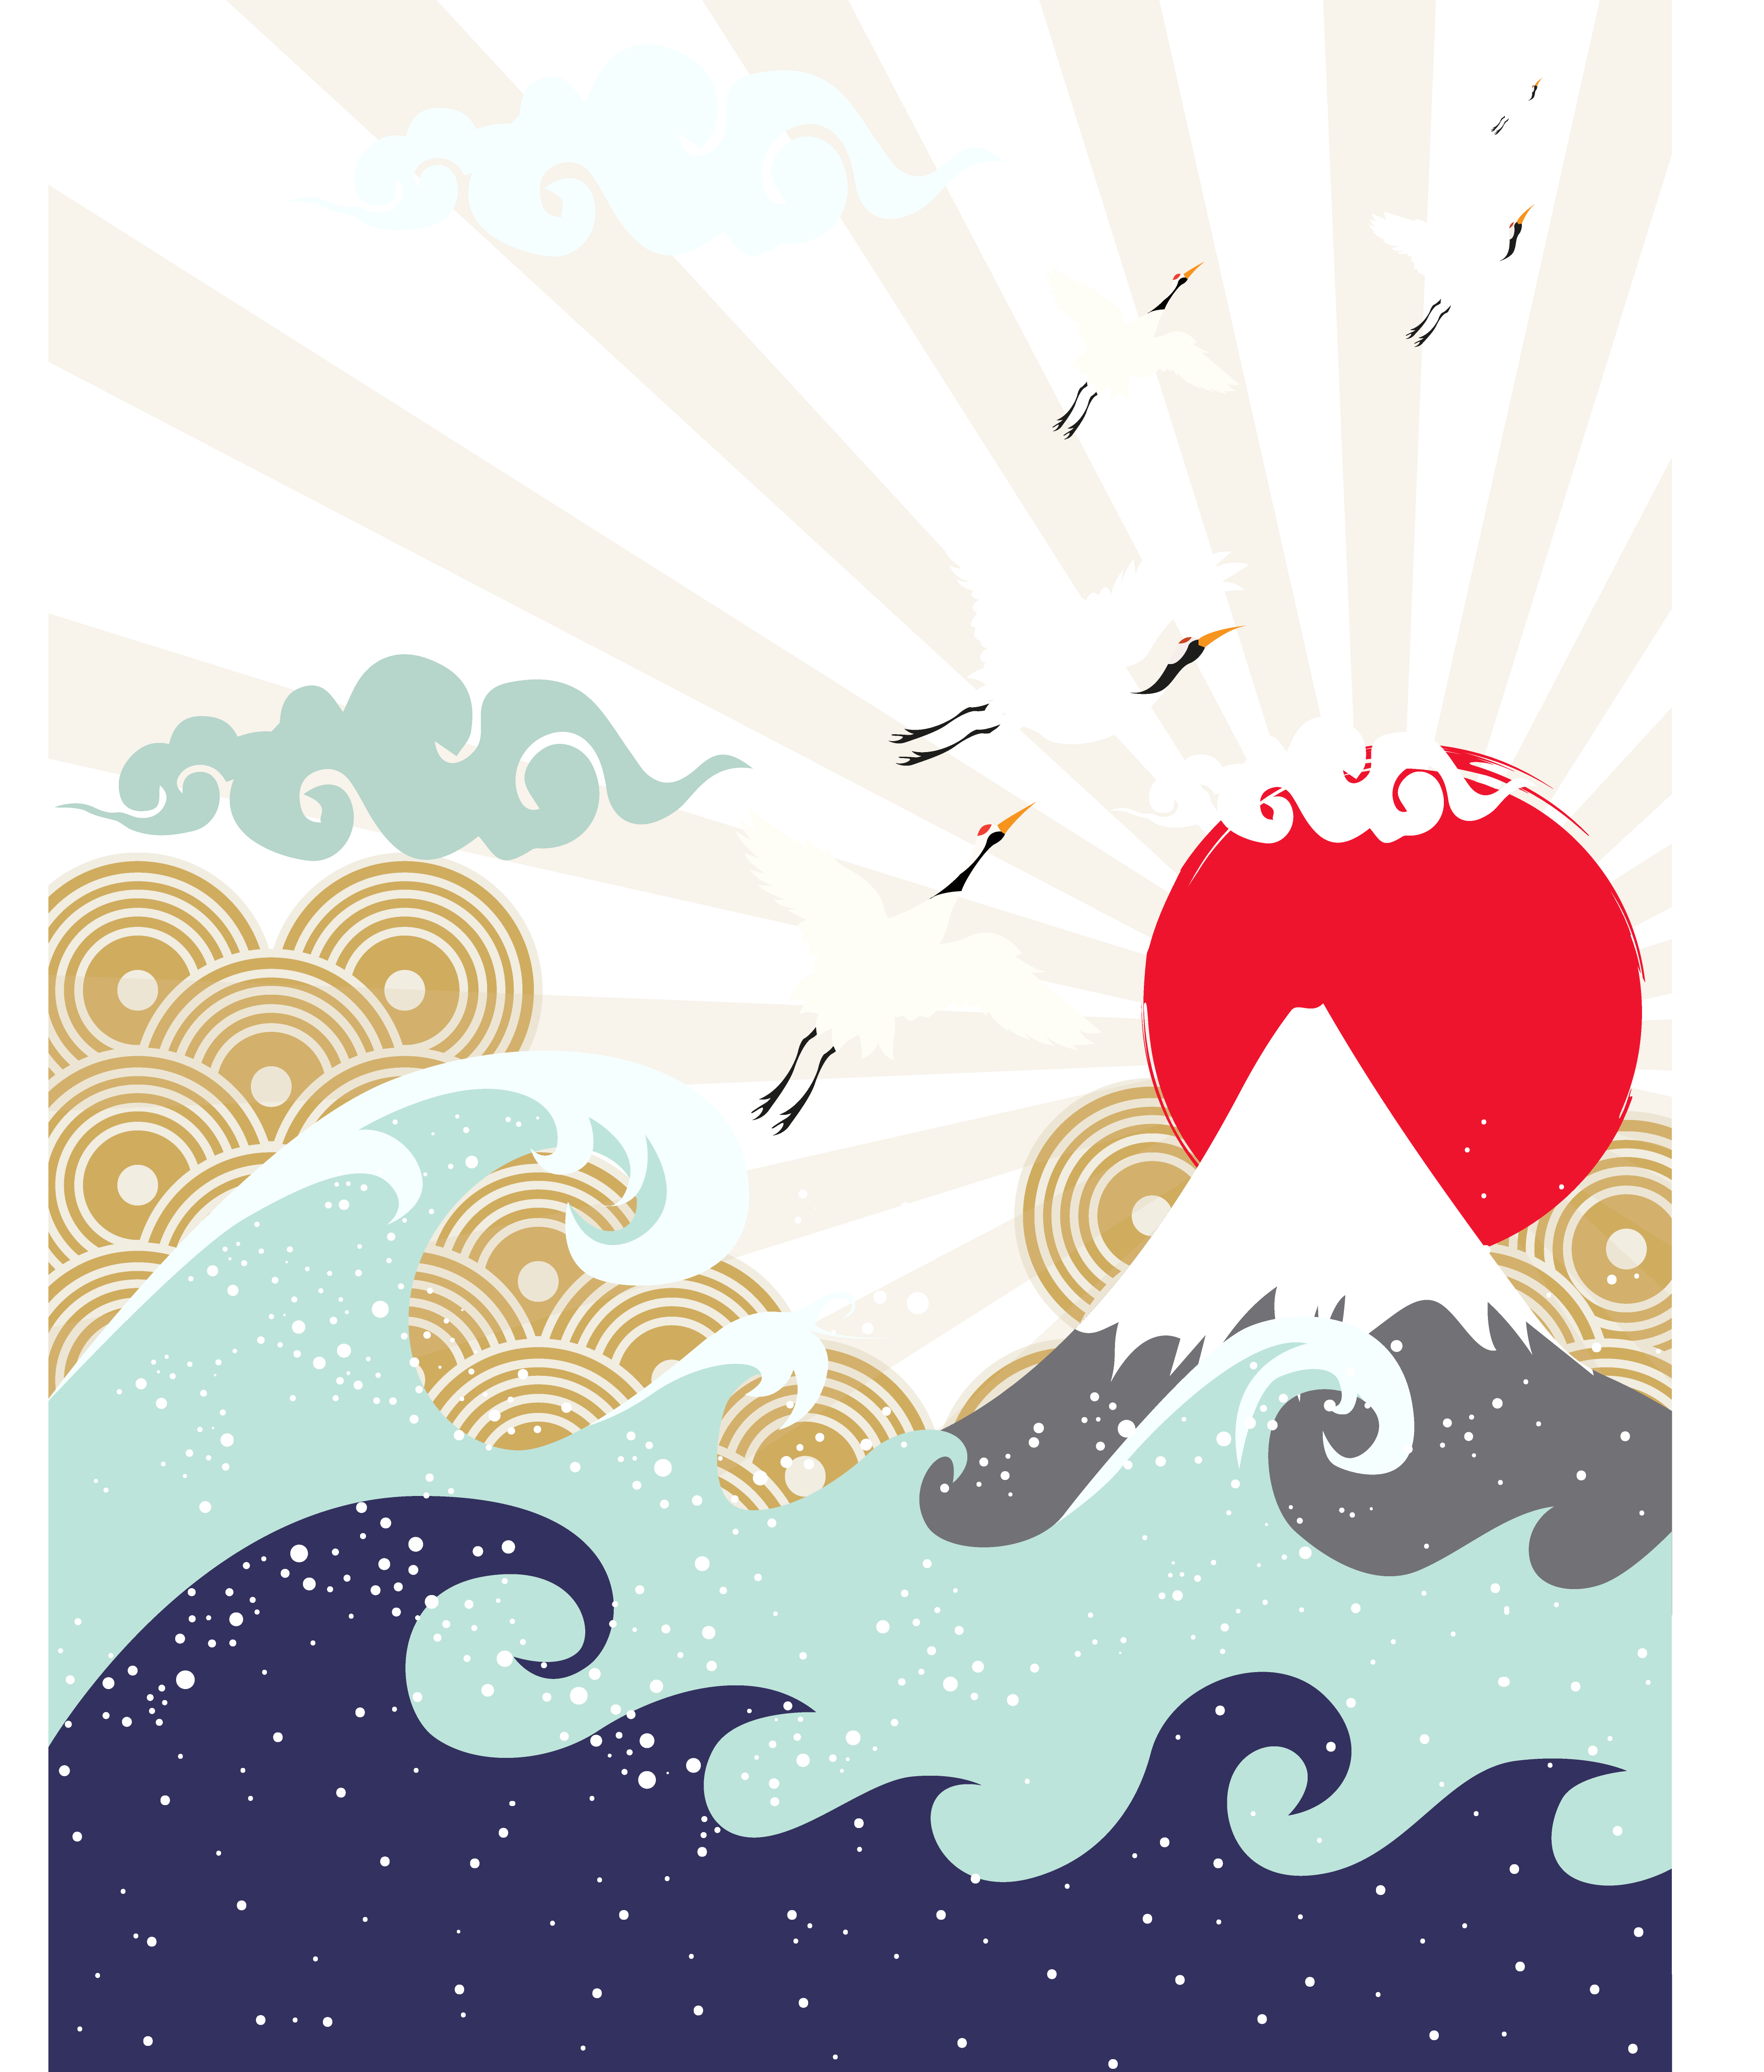 Mountains sun and cloud clipart png royalty free download Japan Wave Illustration - Mountain Sun Japanese illustration 3846 ... png royalty free download